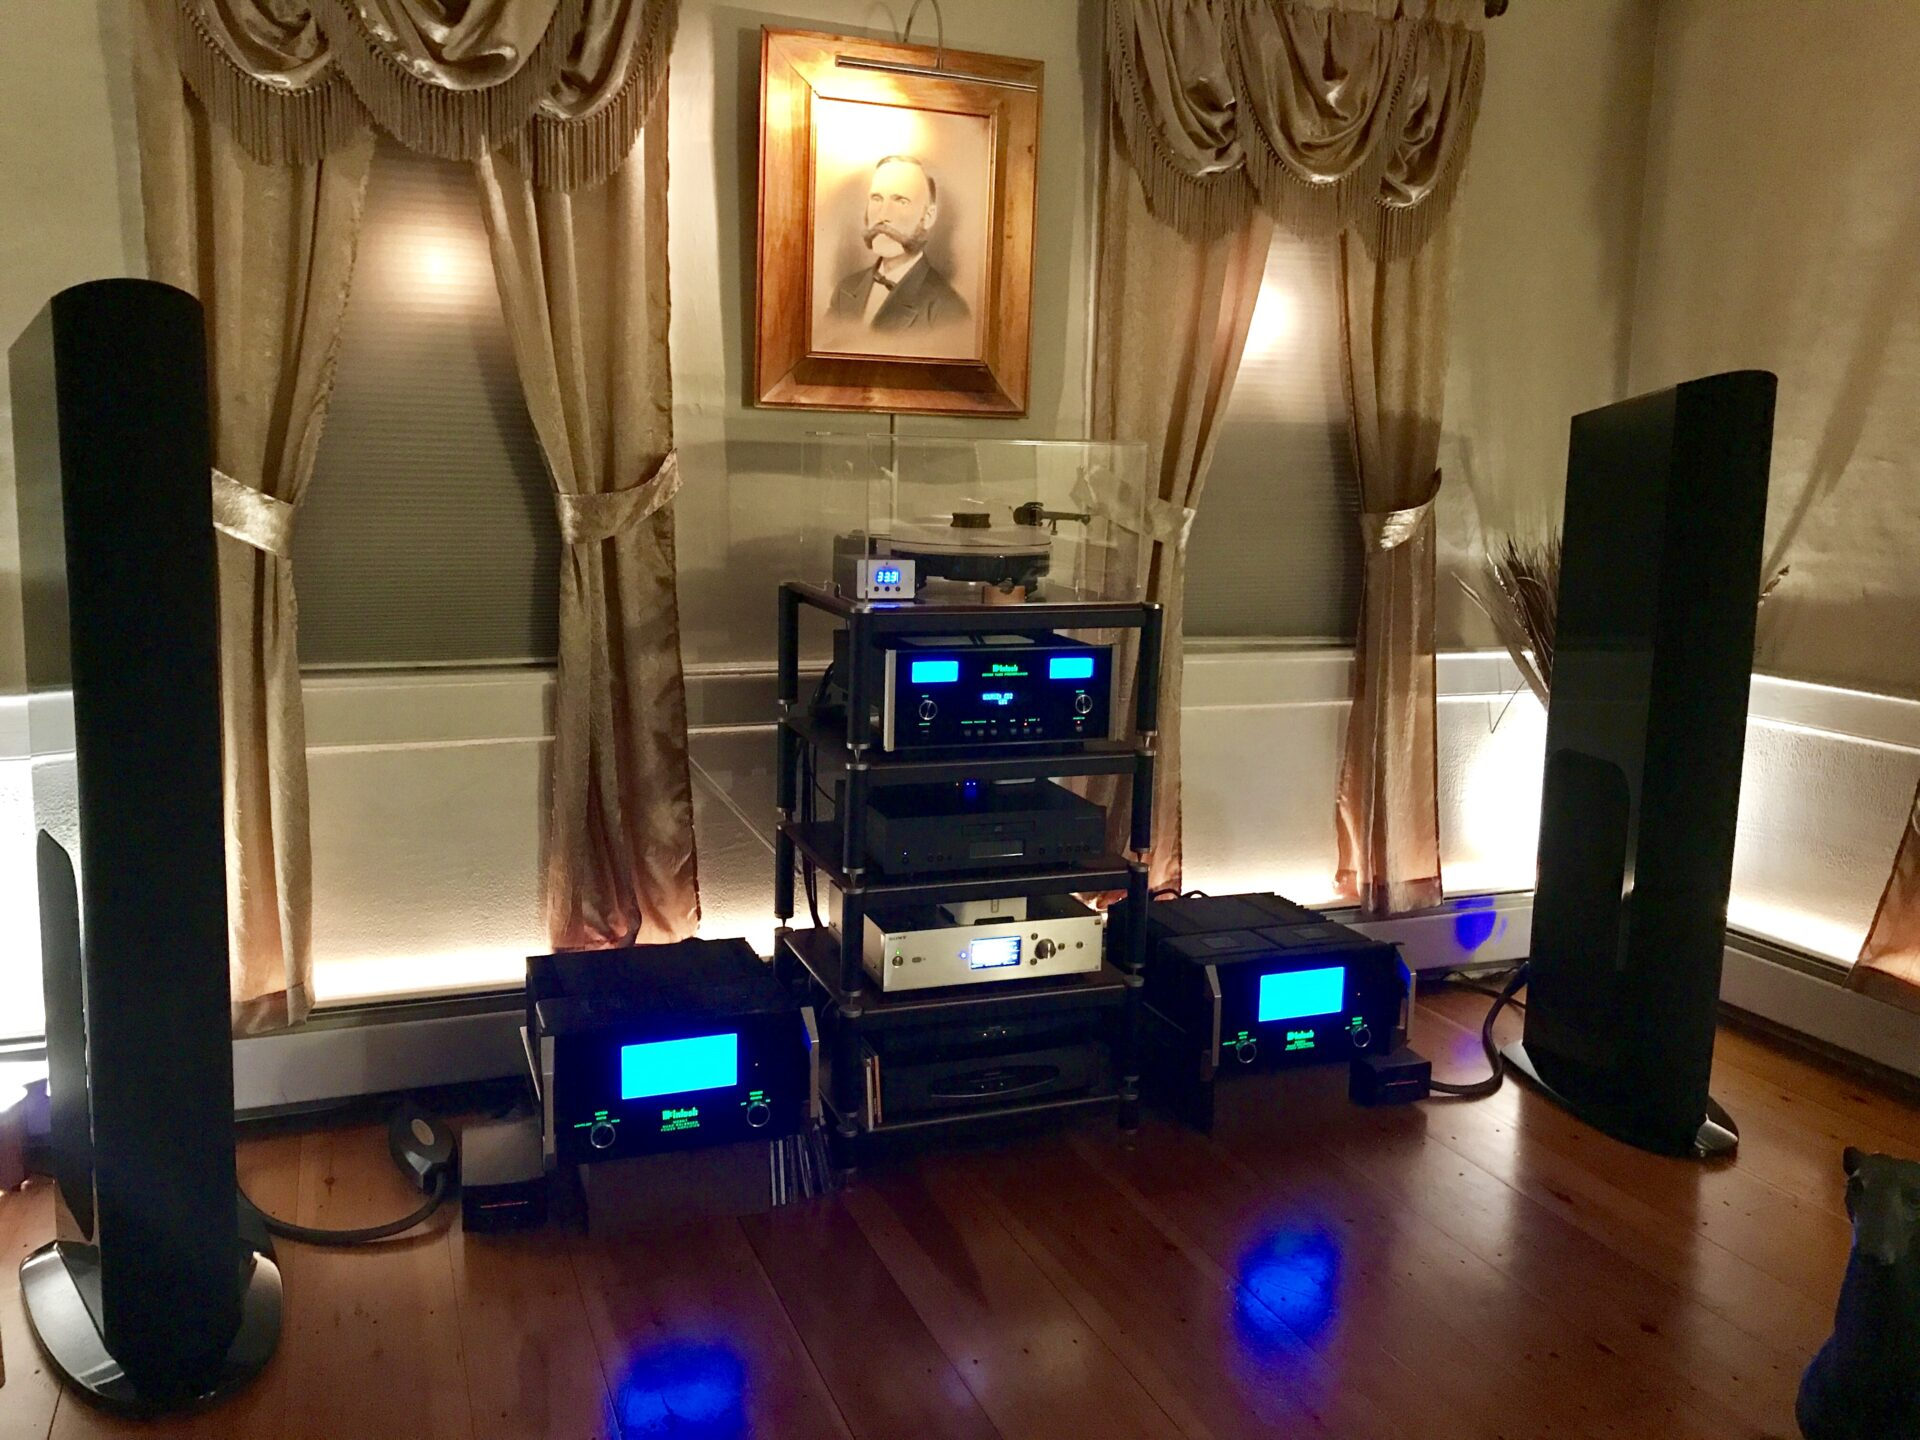 McIntosh and Goldenear Reference system